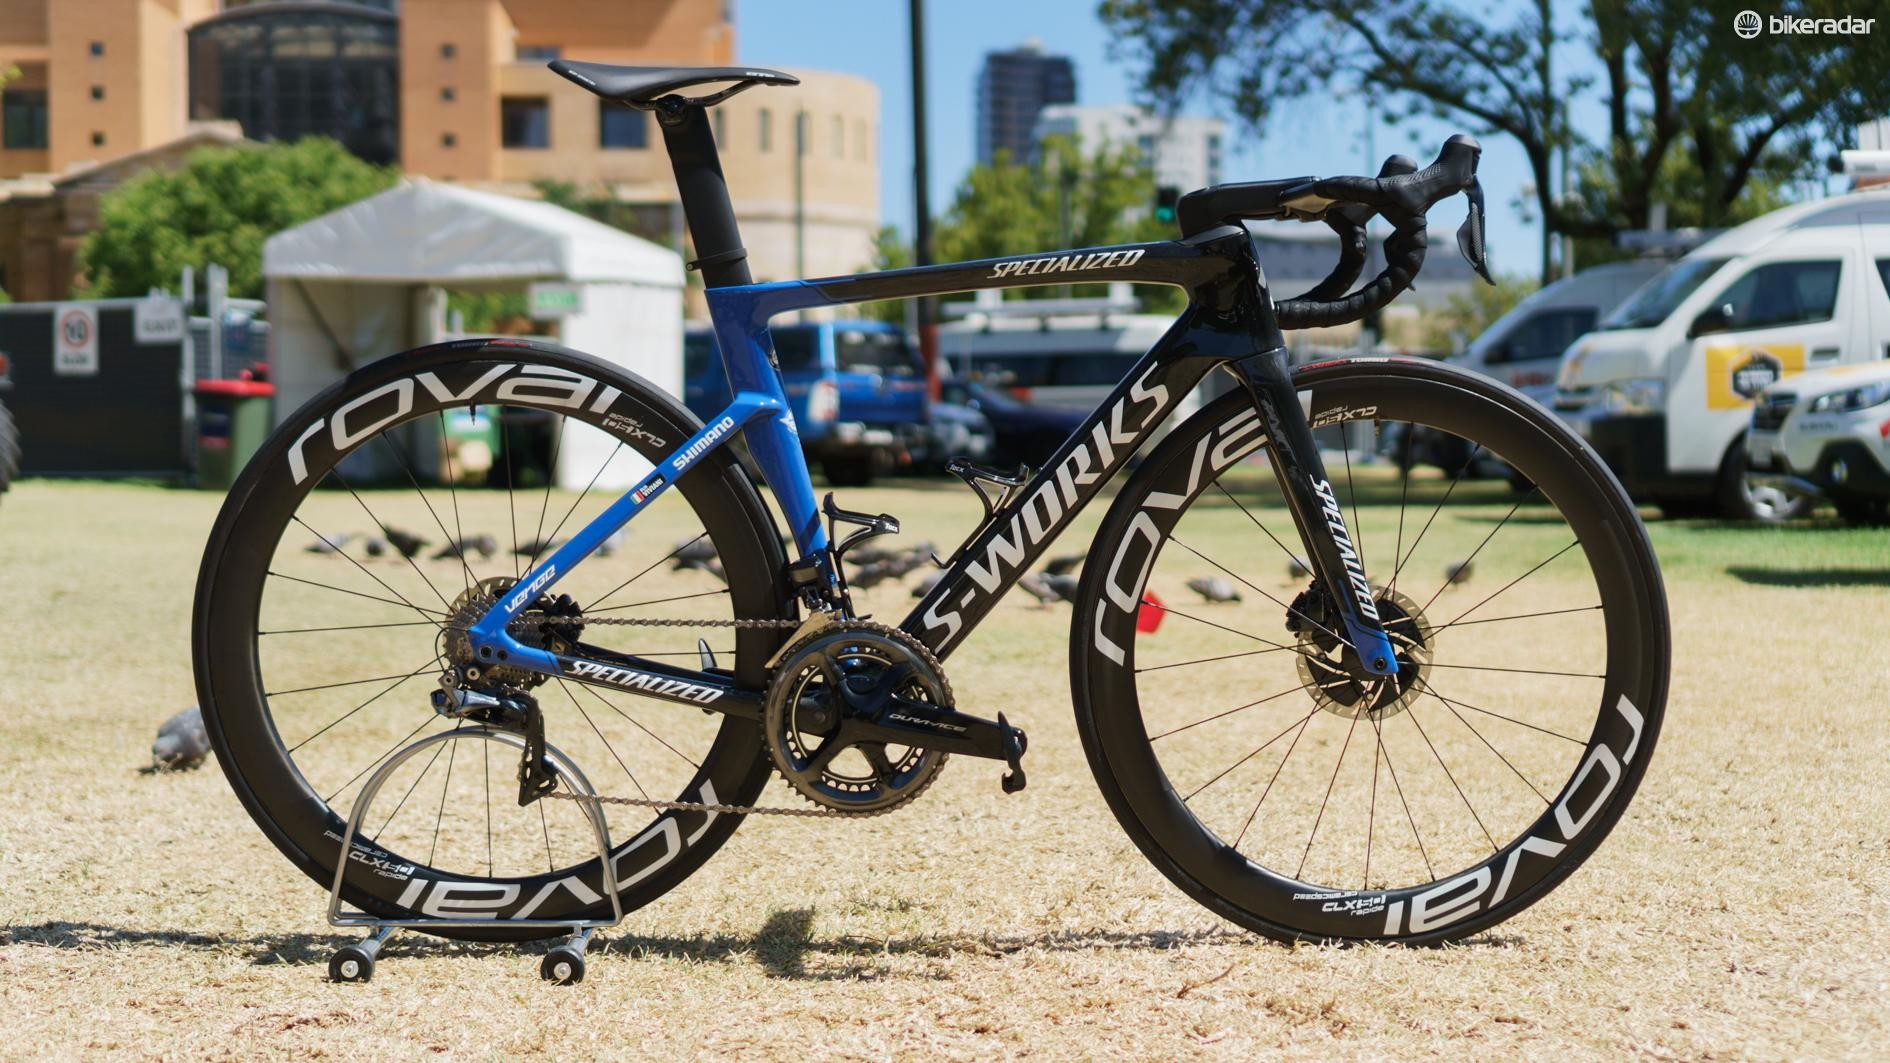 Elia Viviani rode this Specialized S-Works Venge to victory in the first stage of the 2019 Tour Down Under